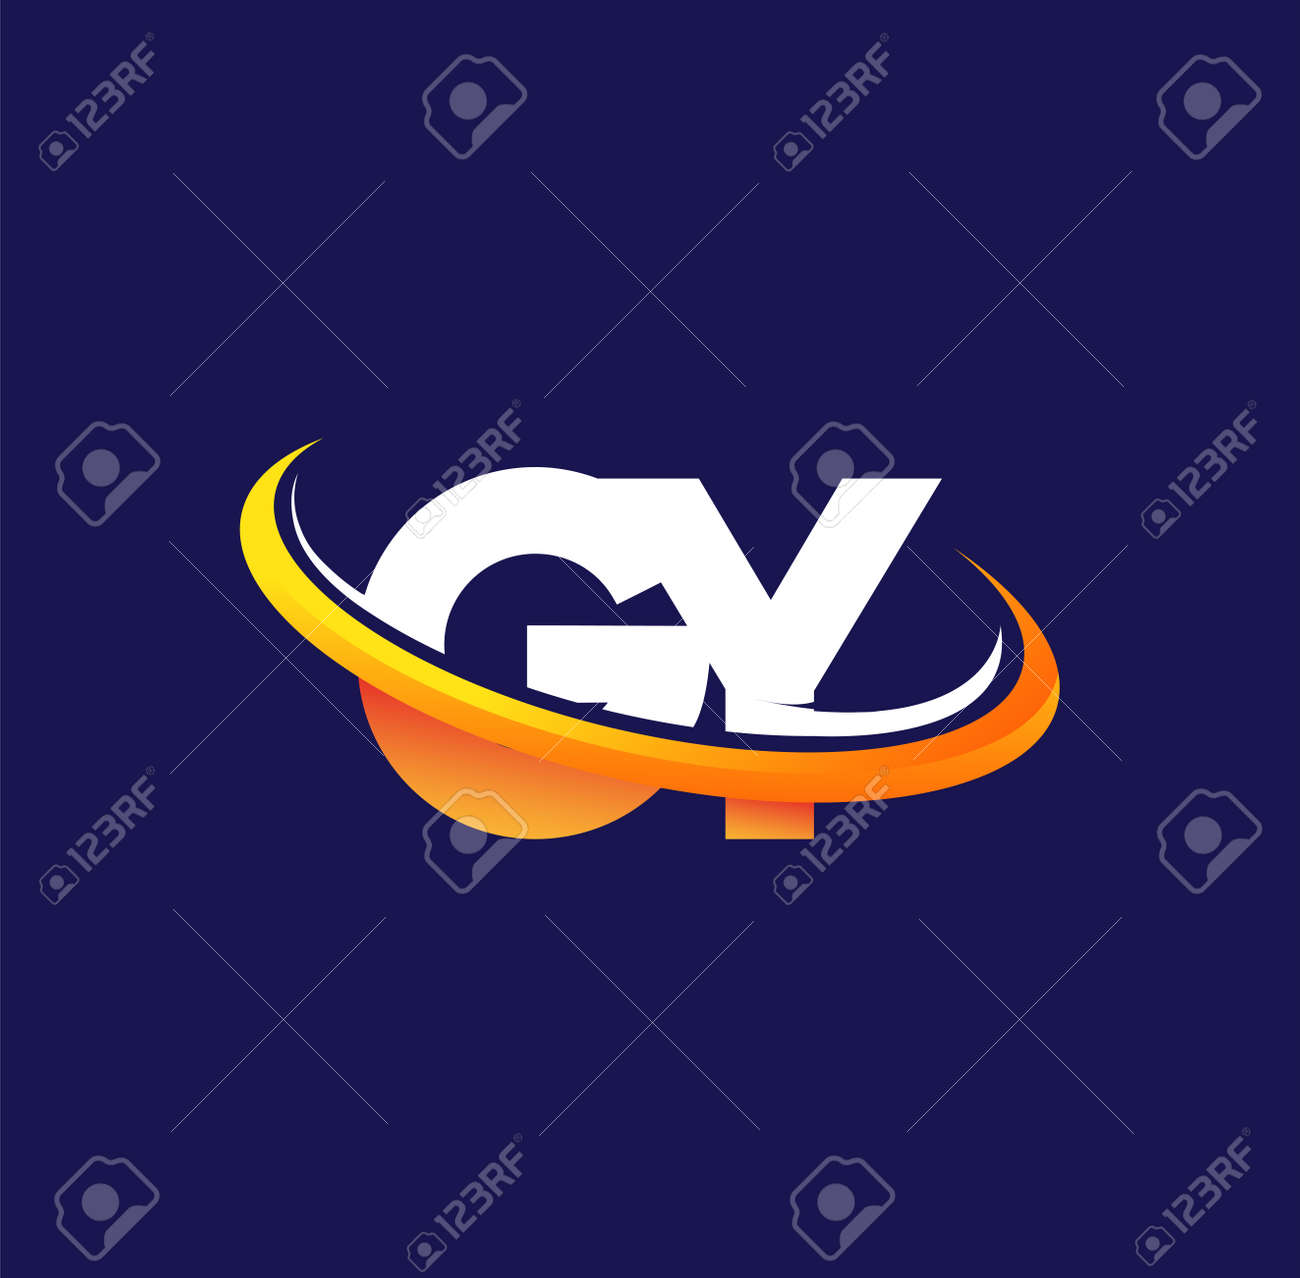 GY initial logo company name colored white and orange swoosh design, isolated on dark background. vector logo for business and company identity. - 163012933